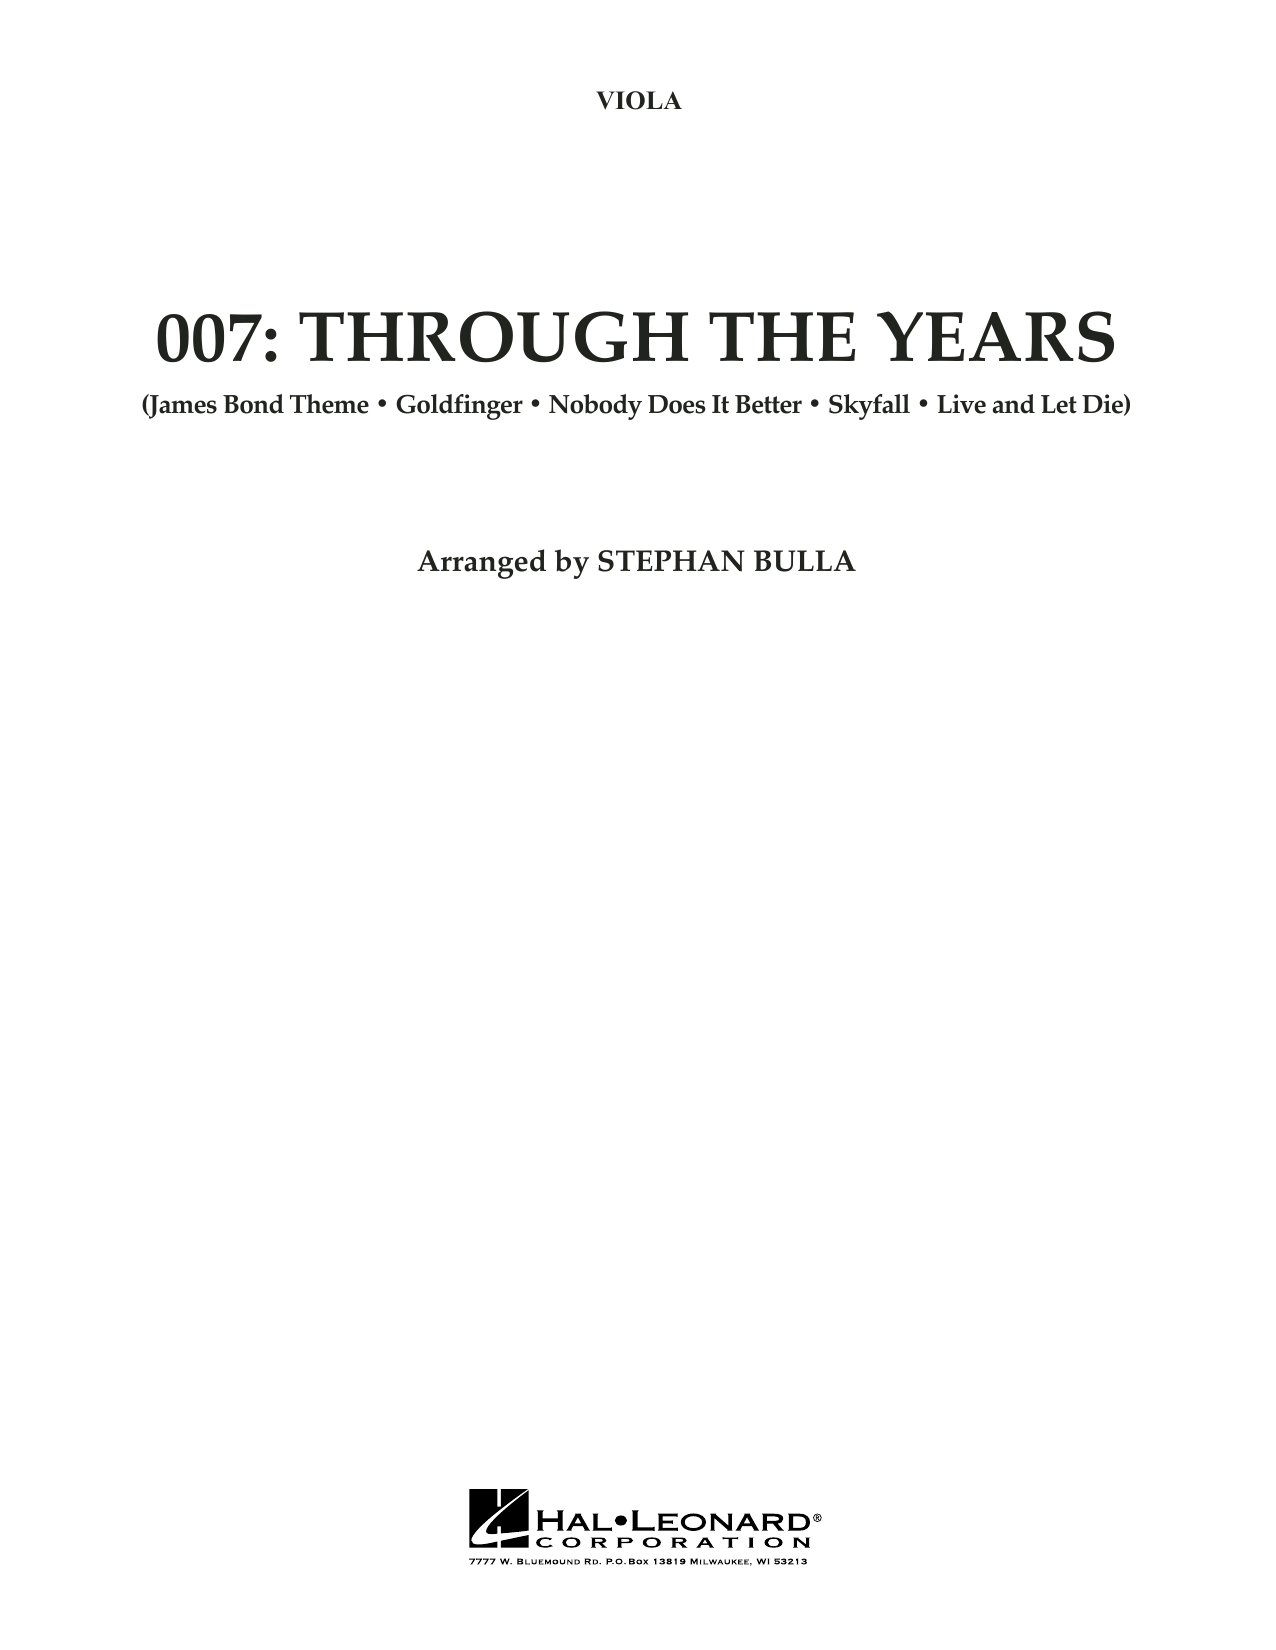 Stephen Bulla 007: Through The Years - Viola sheet music preview music notes and score for Orchestra including 4 page(s)